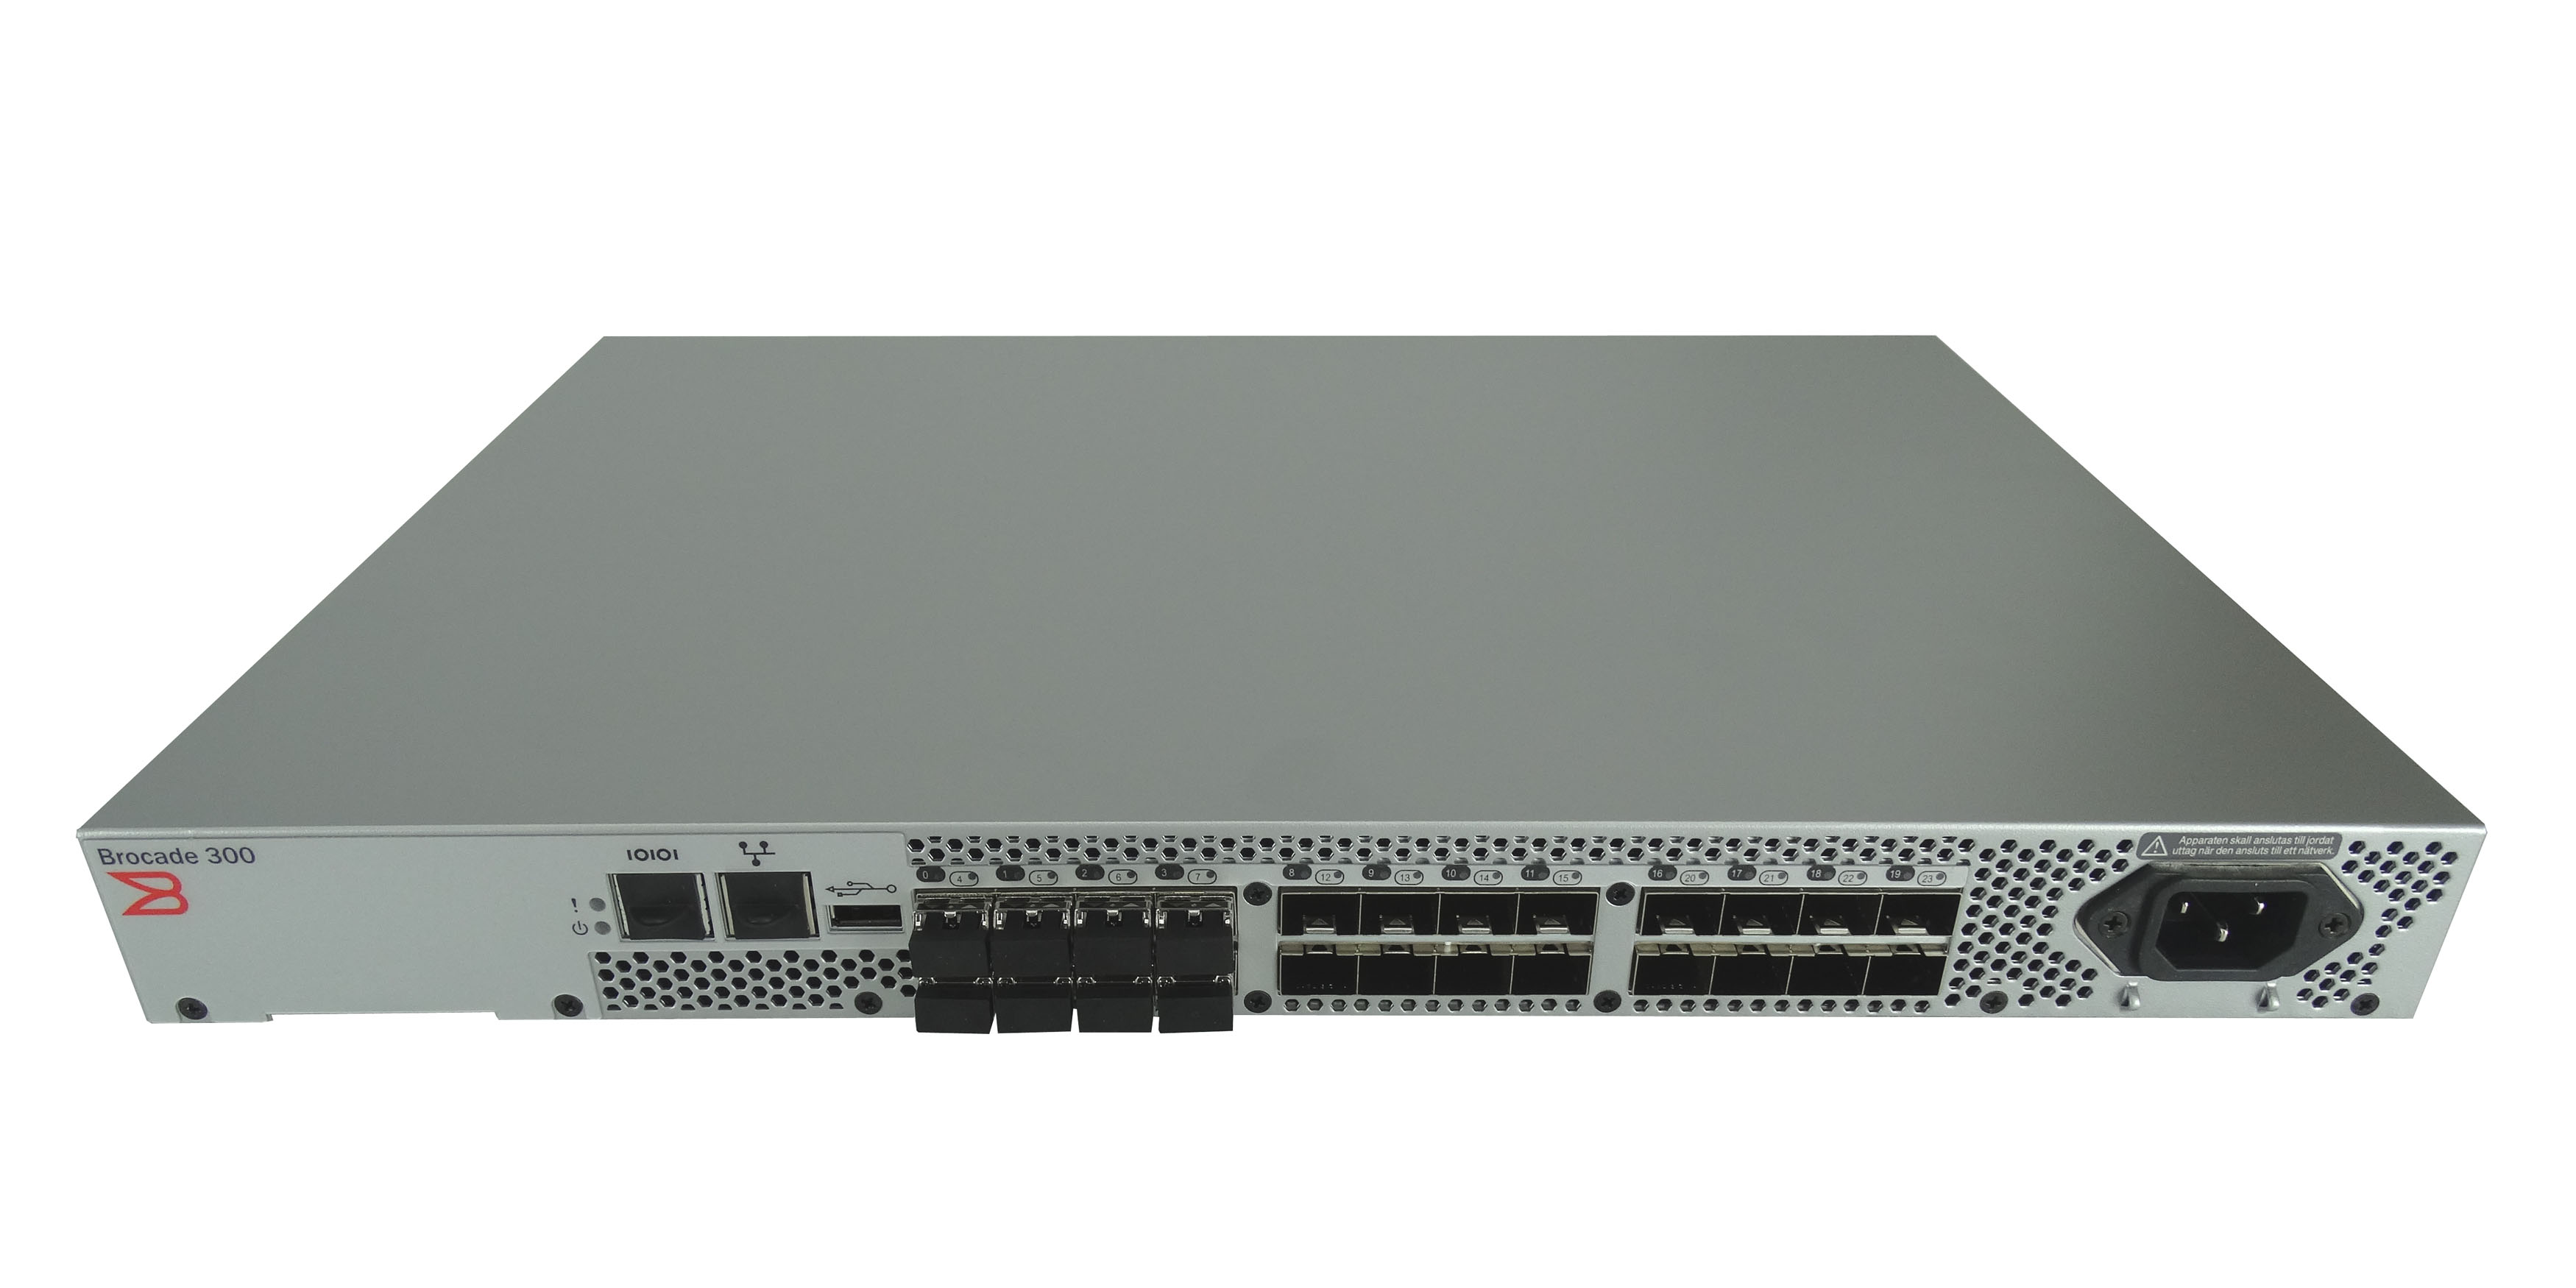 Dell Brocade 300 24 Port 8GB Fiber Channel Switch DL-320-0001 (R875F)